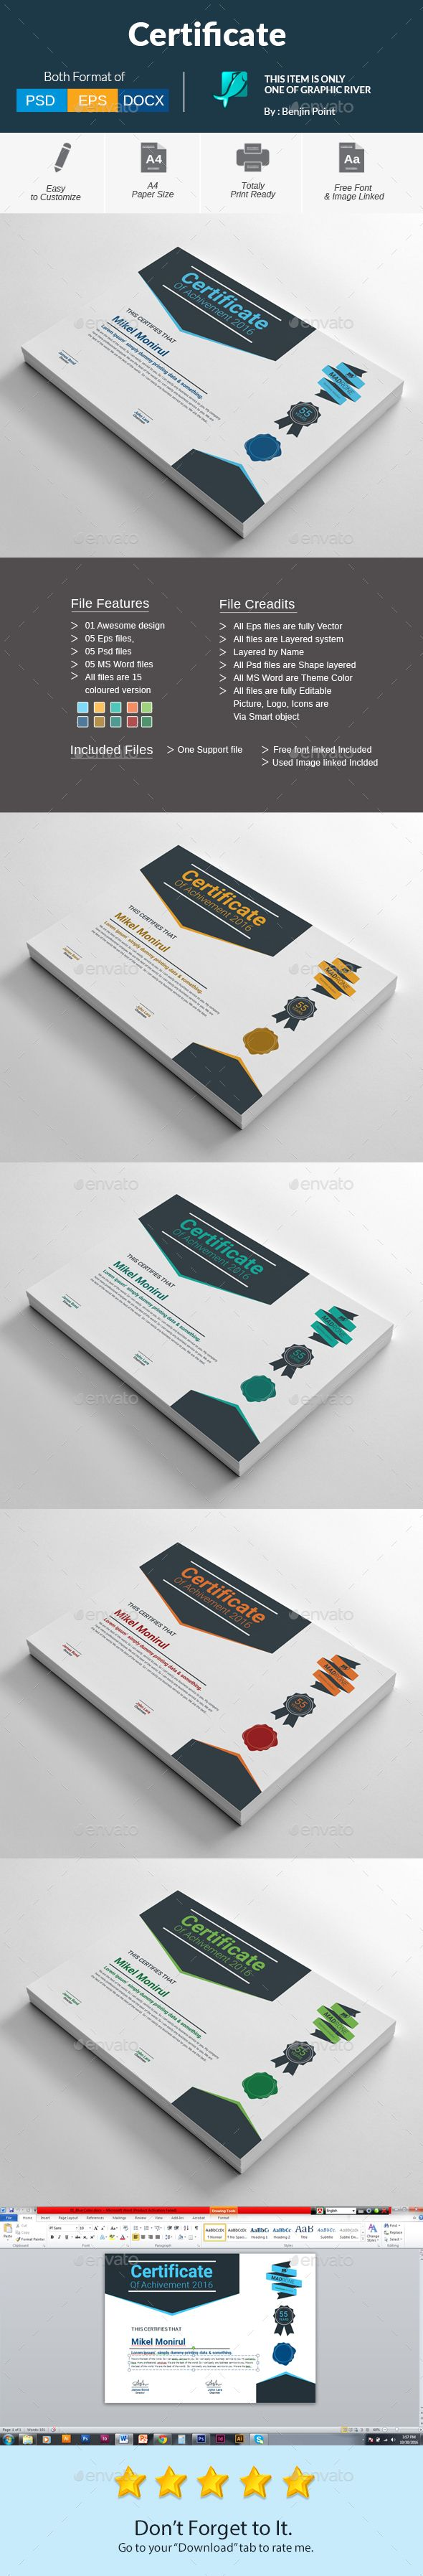 #Certificate - Certificates #Stationery Download here: https://graphicriver.net/item/certificate/18627136?ref=alena994